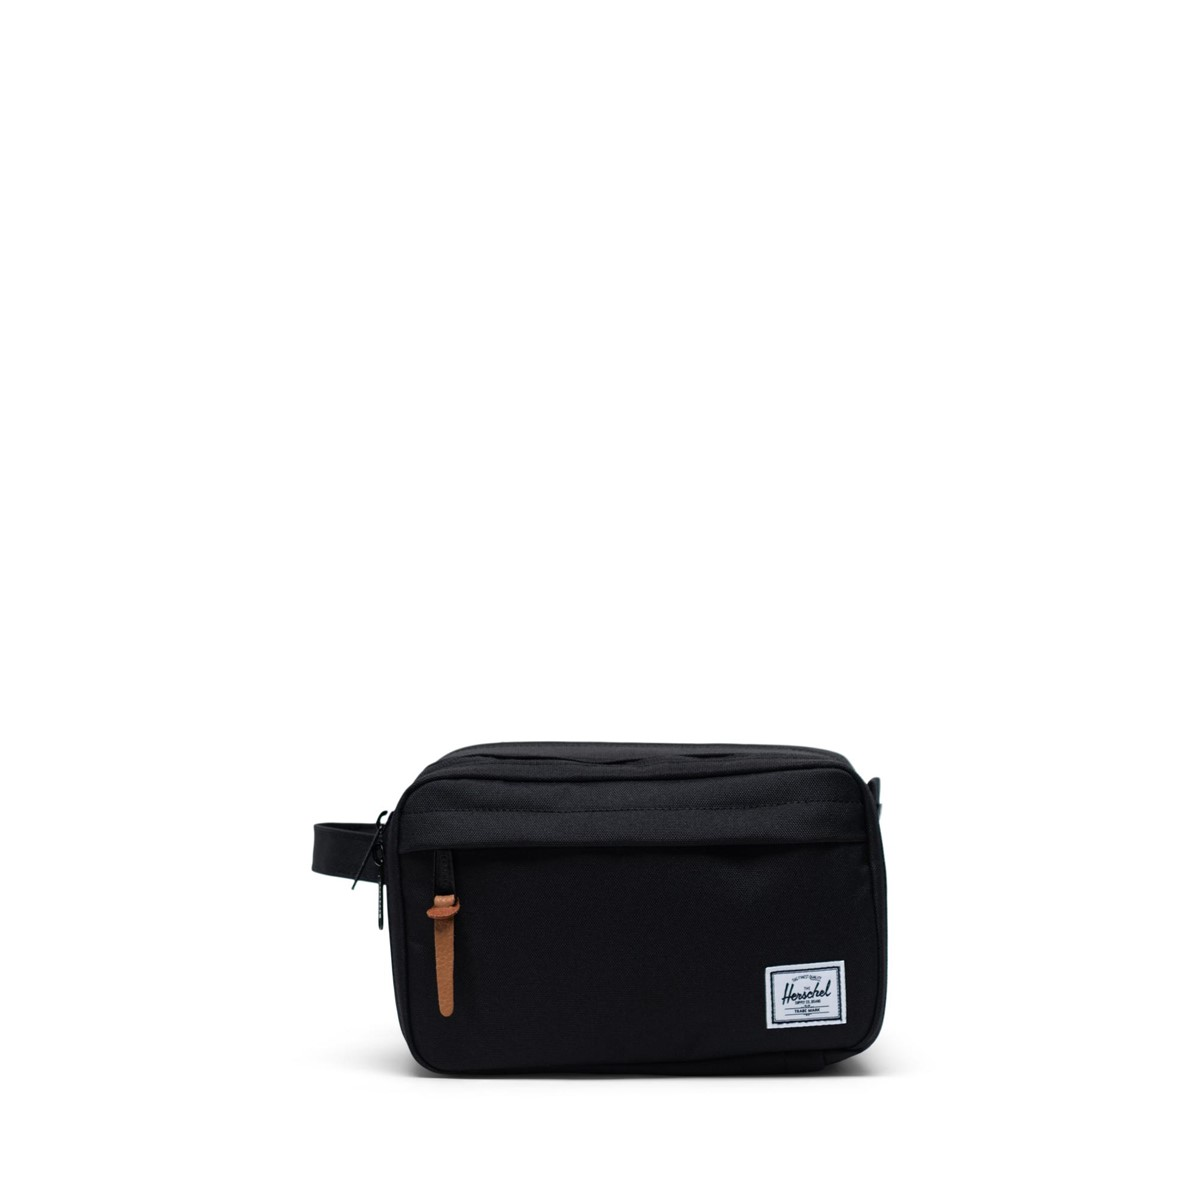 Chapter XL Travel Kit in Black